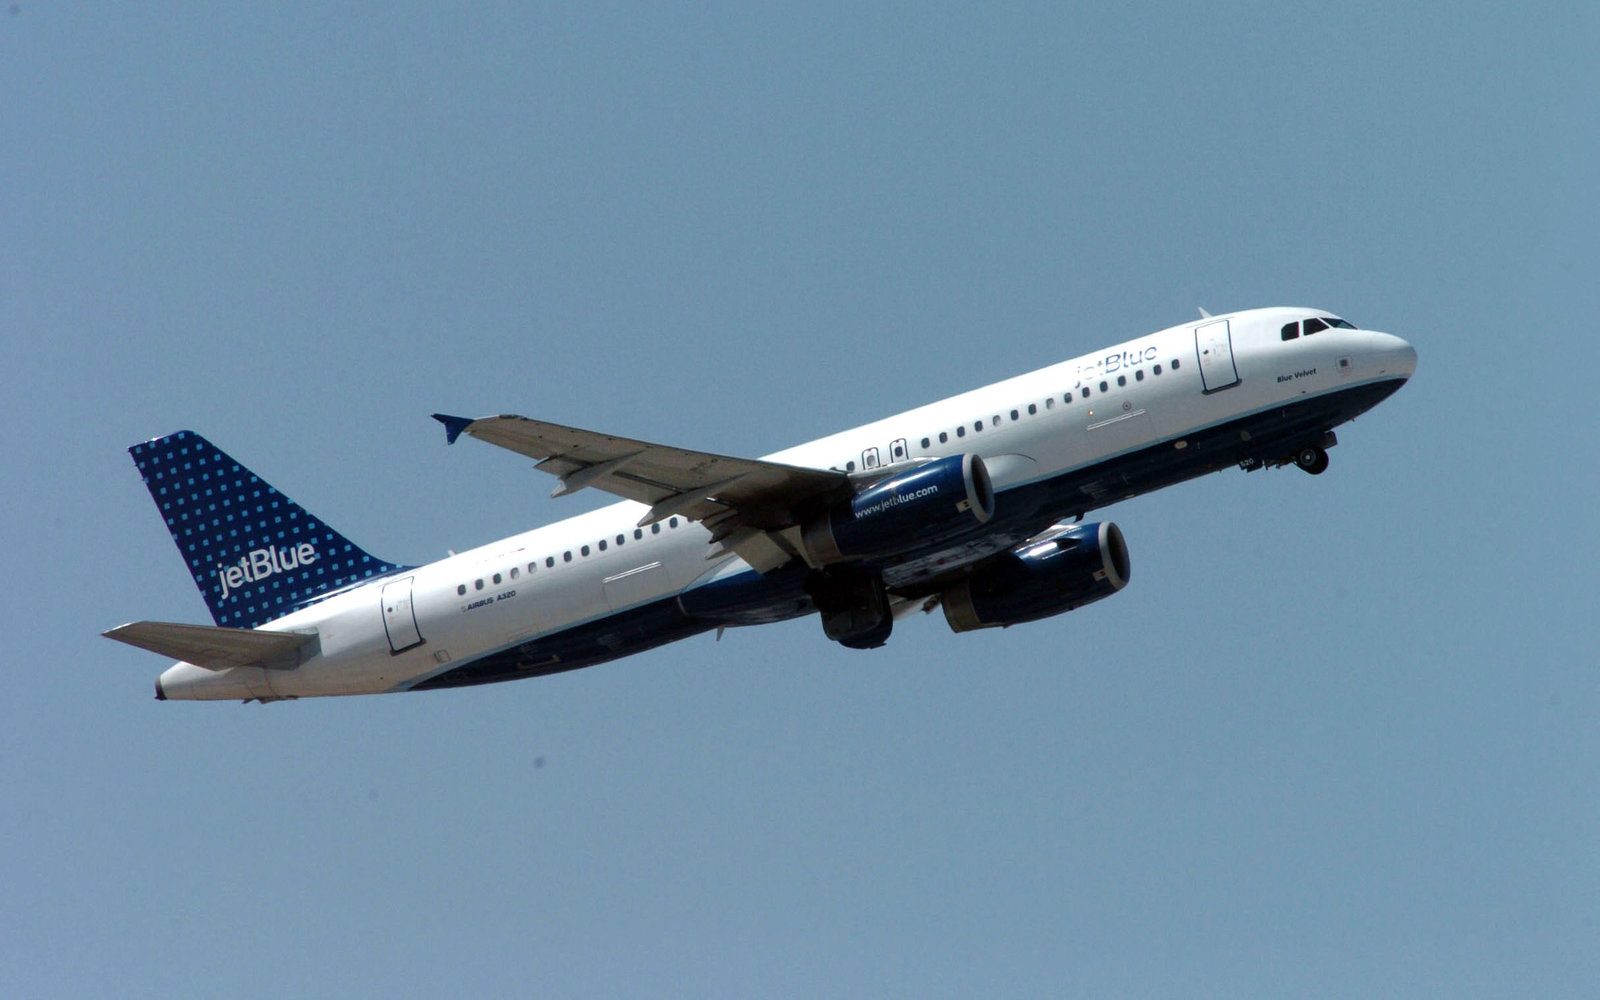 JetBlue Flight Returns To Boston After 'Unusual Odor' In Cabin